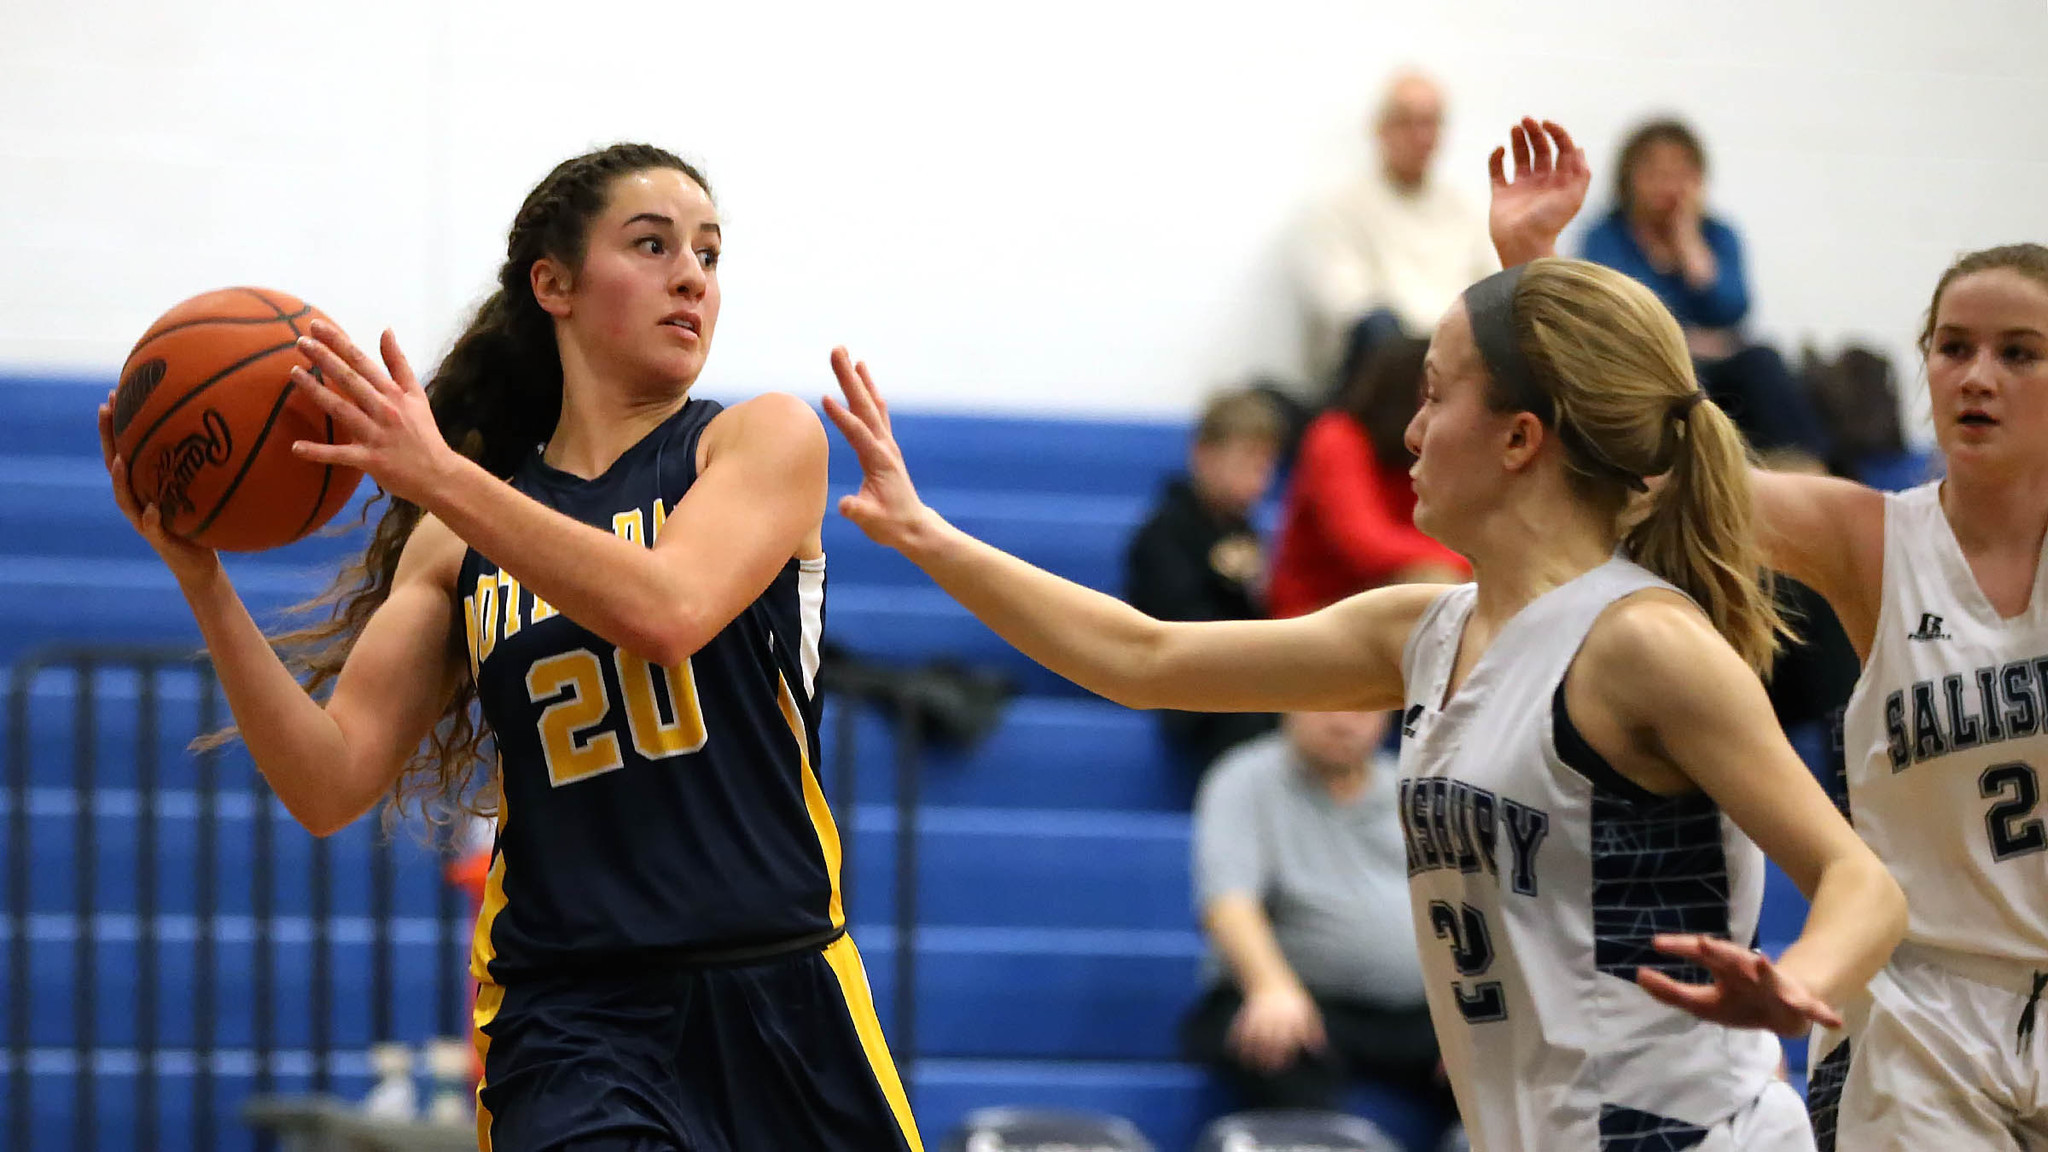 PICTURES: Notre Dame at Salisbury girls high school basketball - The Morning Call